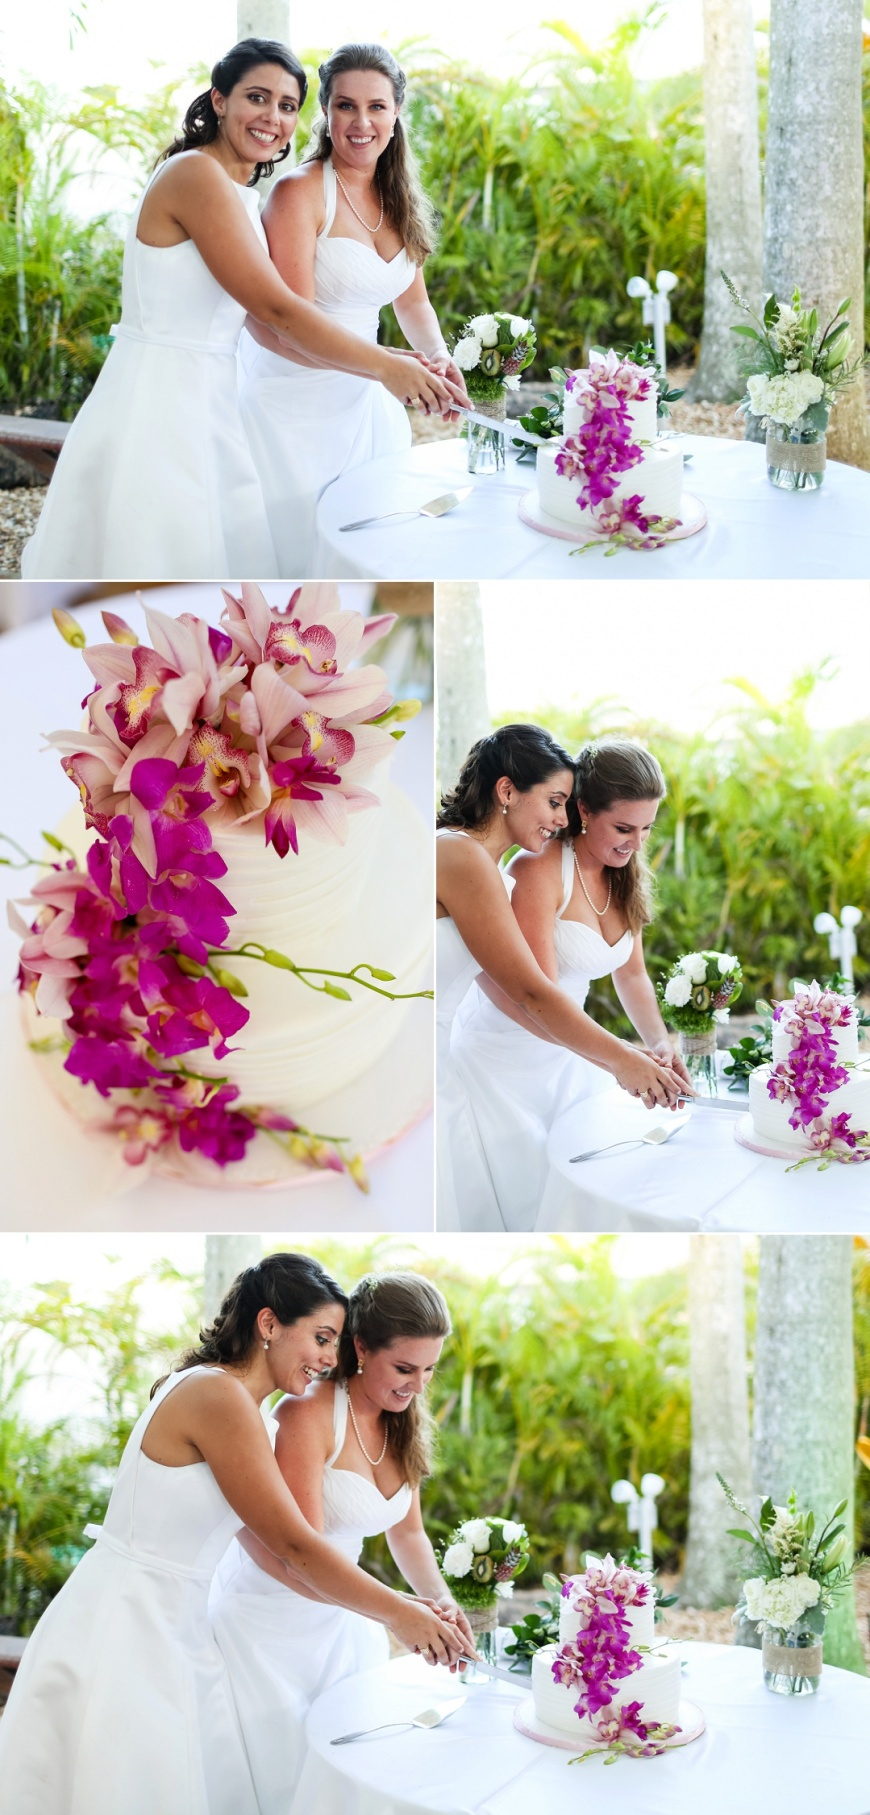 Royal-Palm-Island-Miami-Wedding-Photographer_1063.jpg